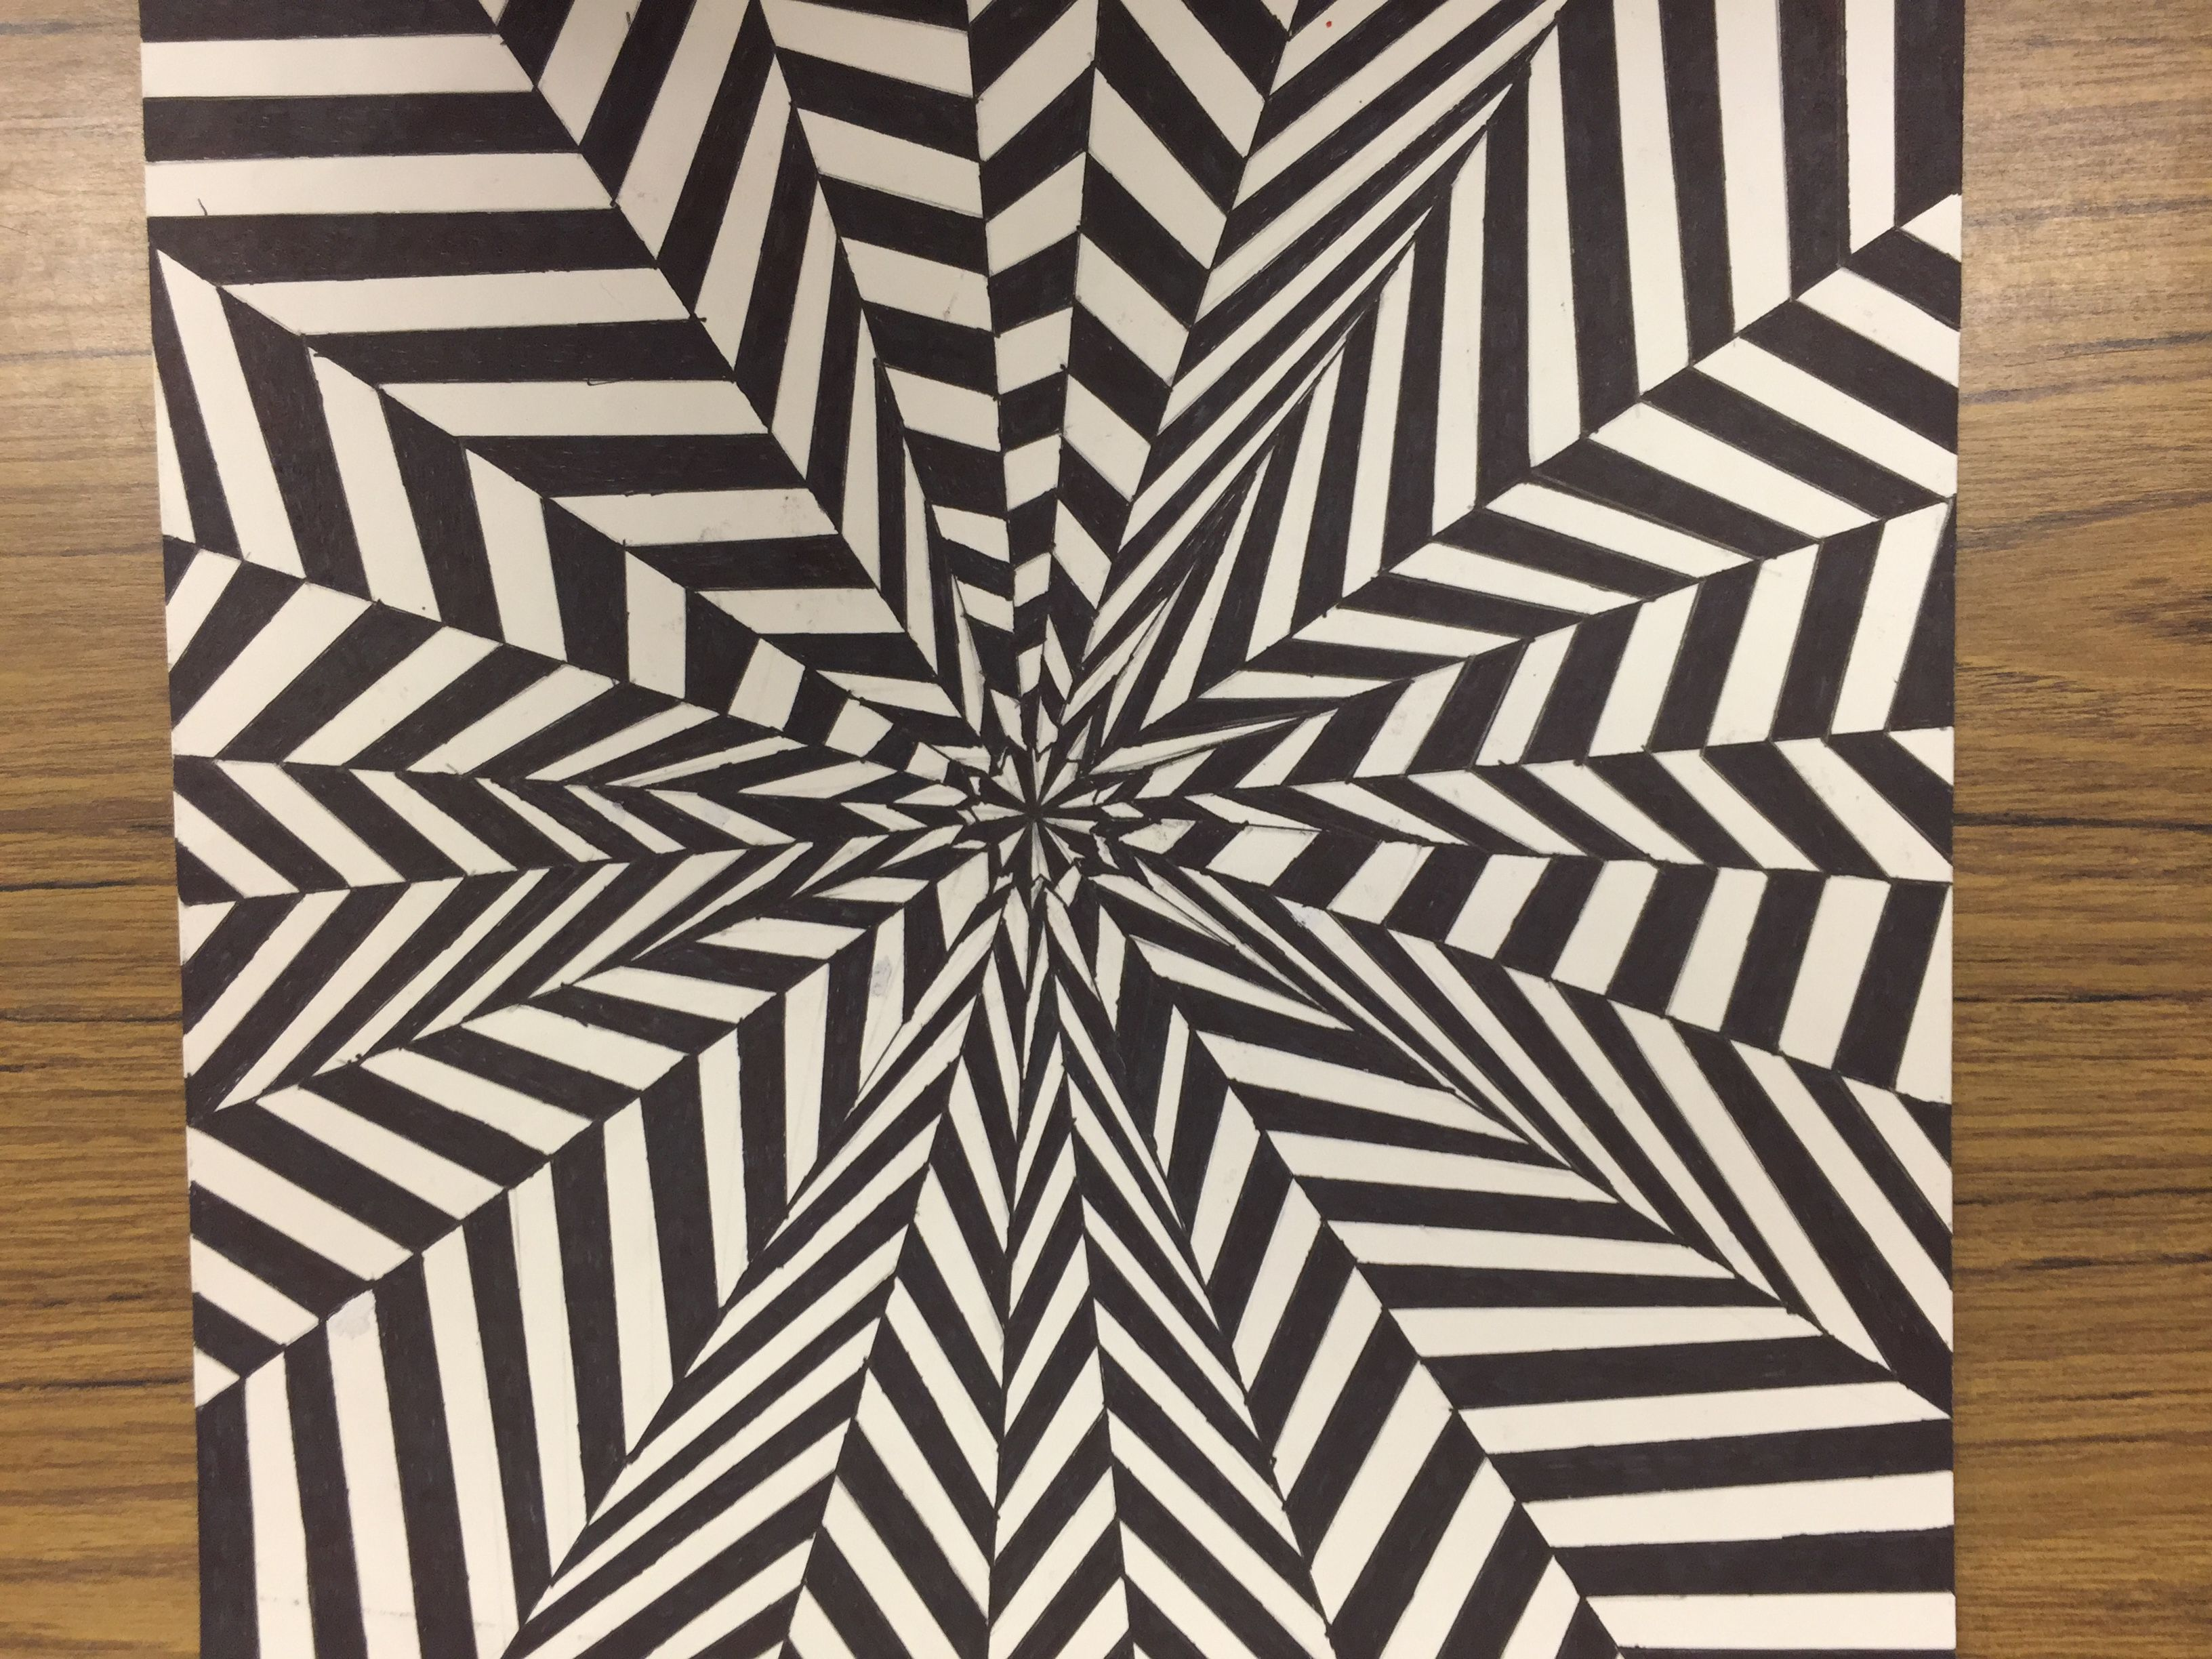 Op Art Movement Op Art Lessons Optical Illusion Drawing